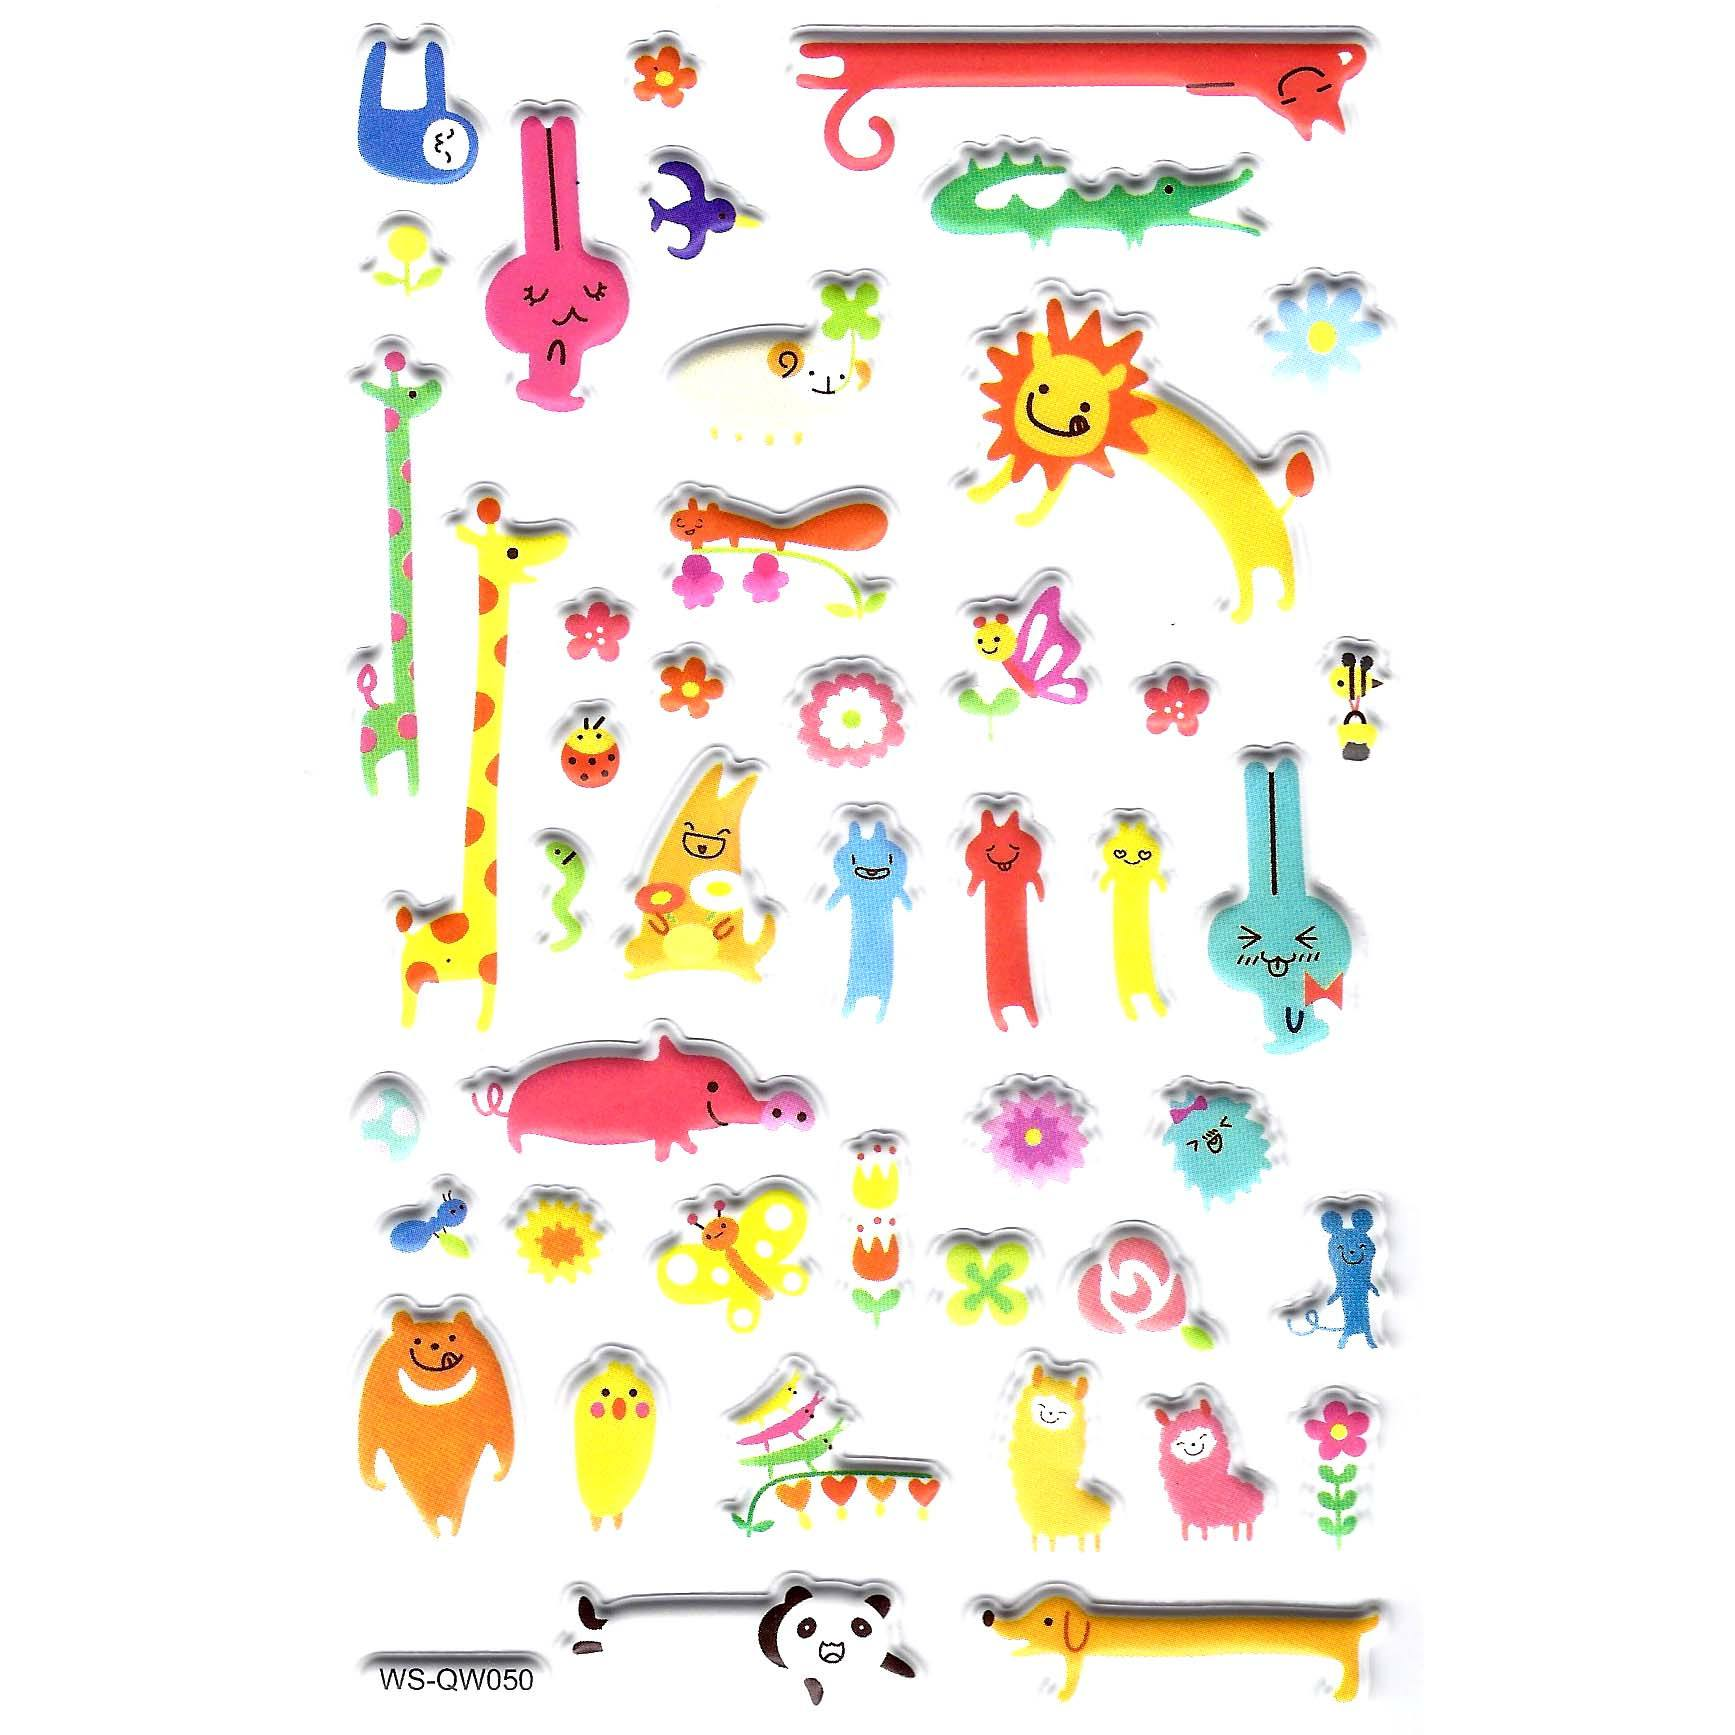 Abstract Animal Illustrated Stickers for Scrapbooking and Decorating